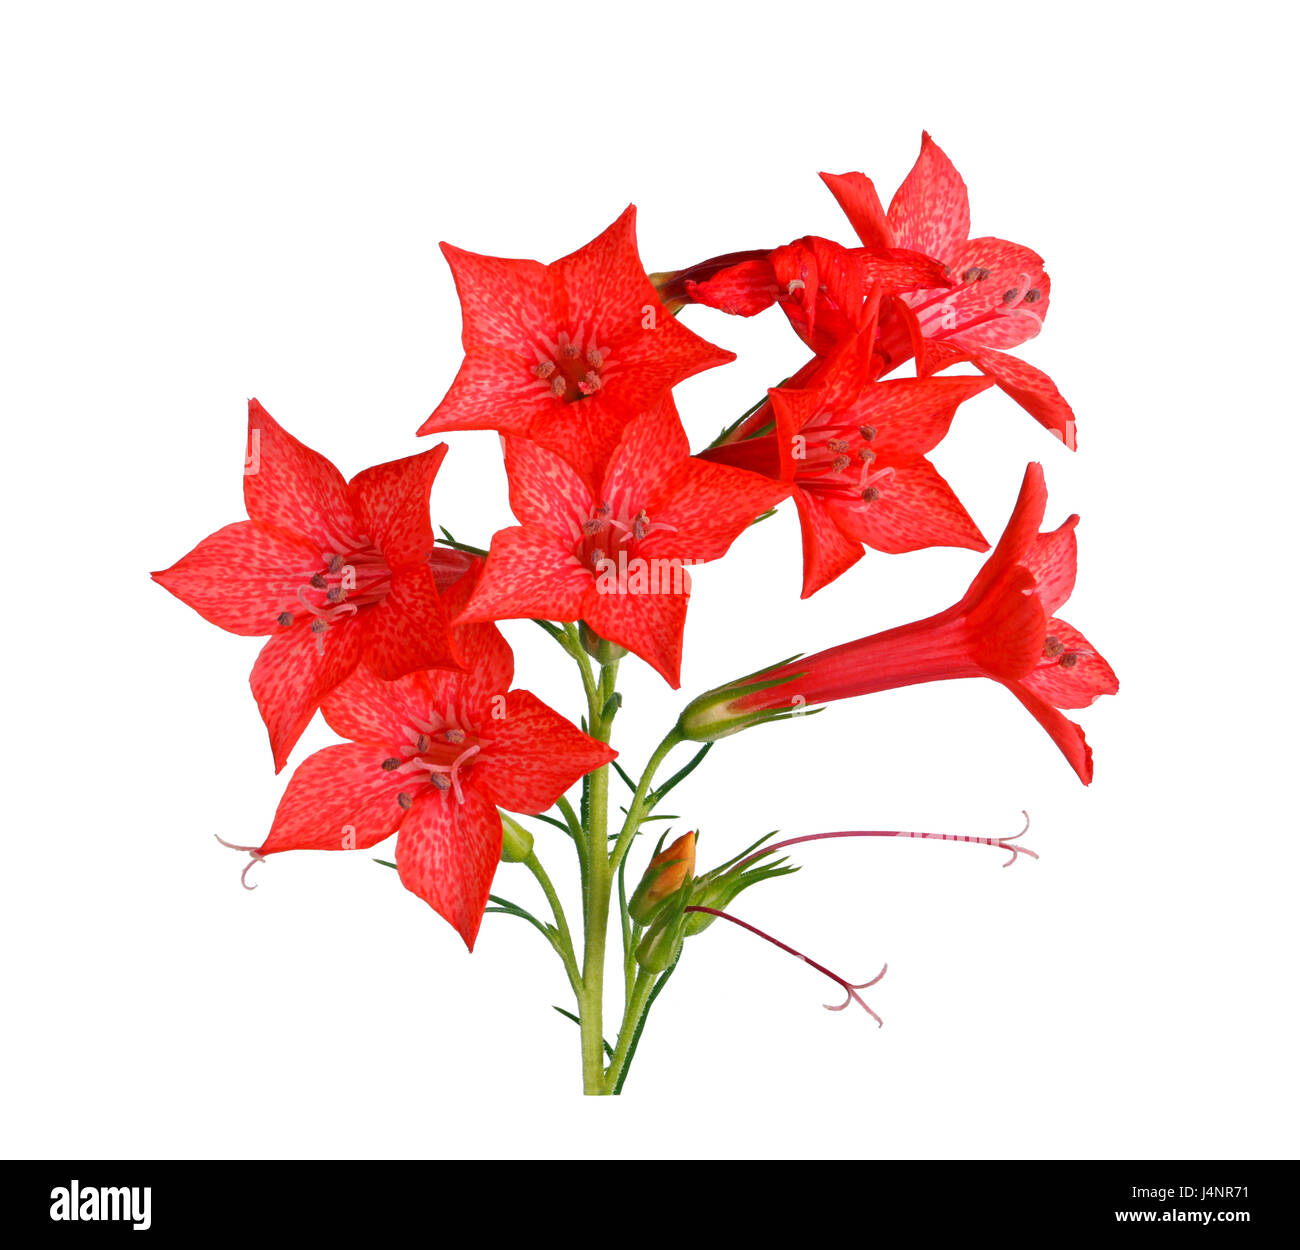 Spray of bright-red flowers of Ipomopsis aggregata cultivar Hummingbird, also called scarlet trumpet, scarlet gilia, - Stock Image